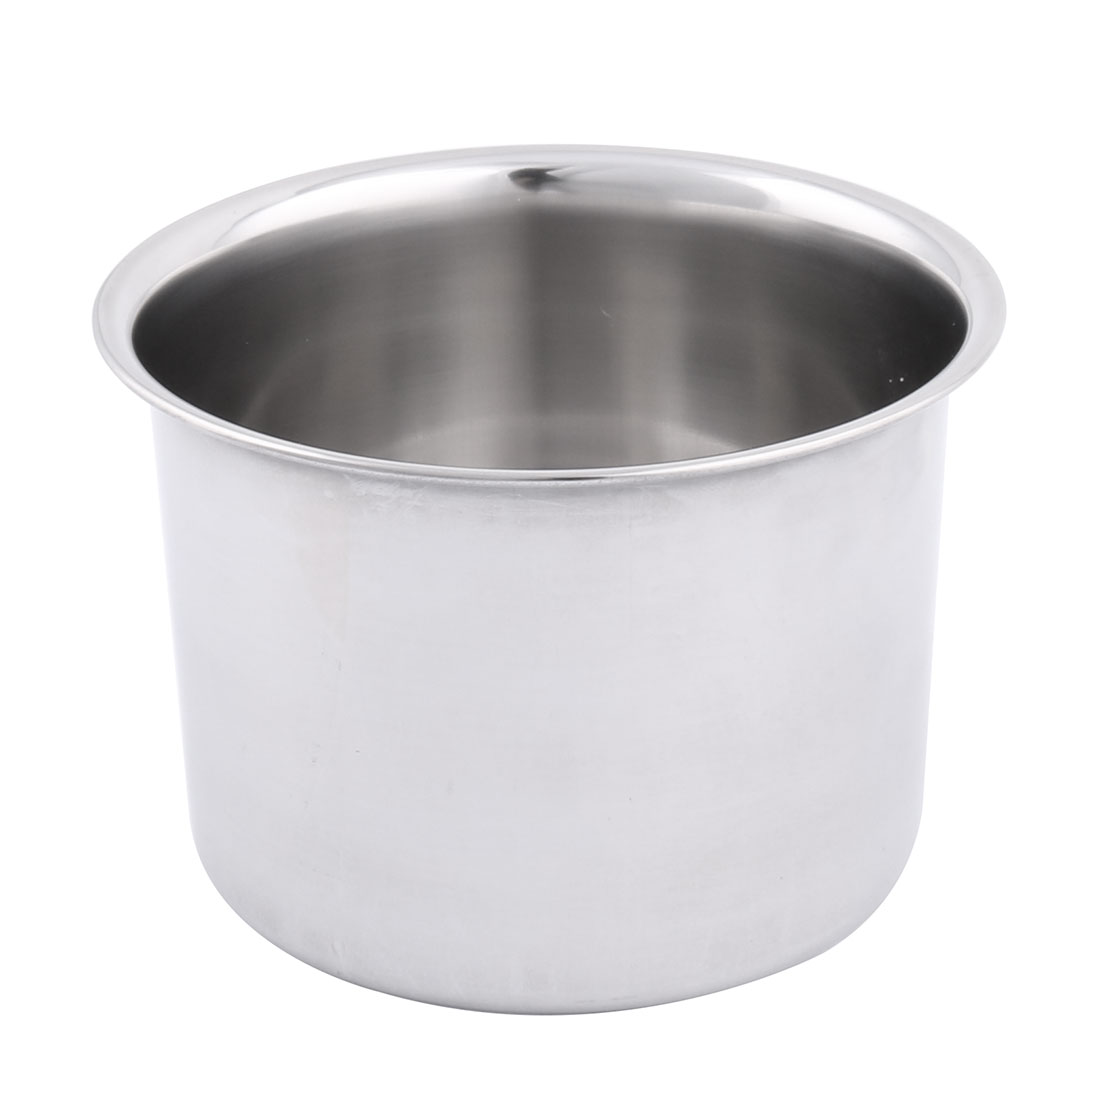 Home Restaurant Stainless Steel Round Design Porridge Food Soup Dish Plate 10cm Dia